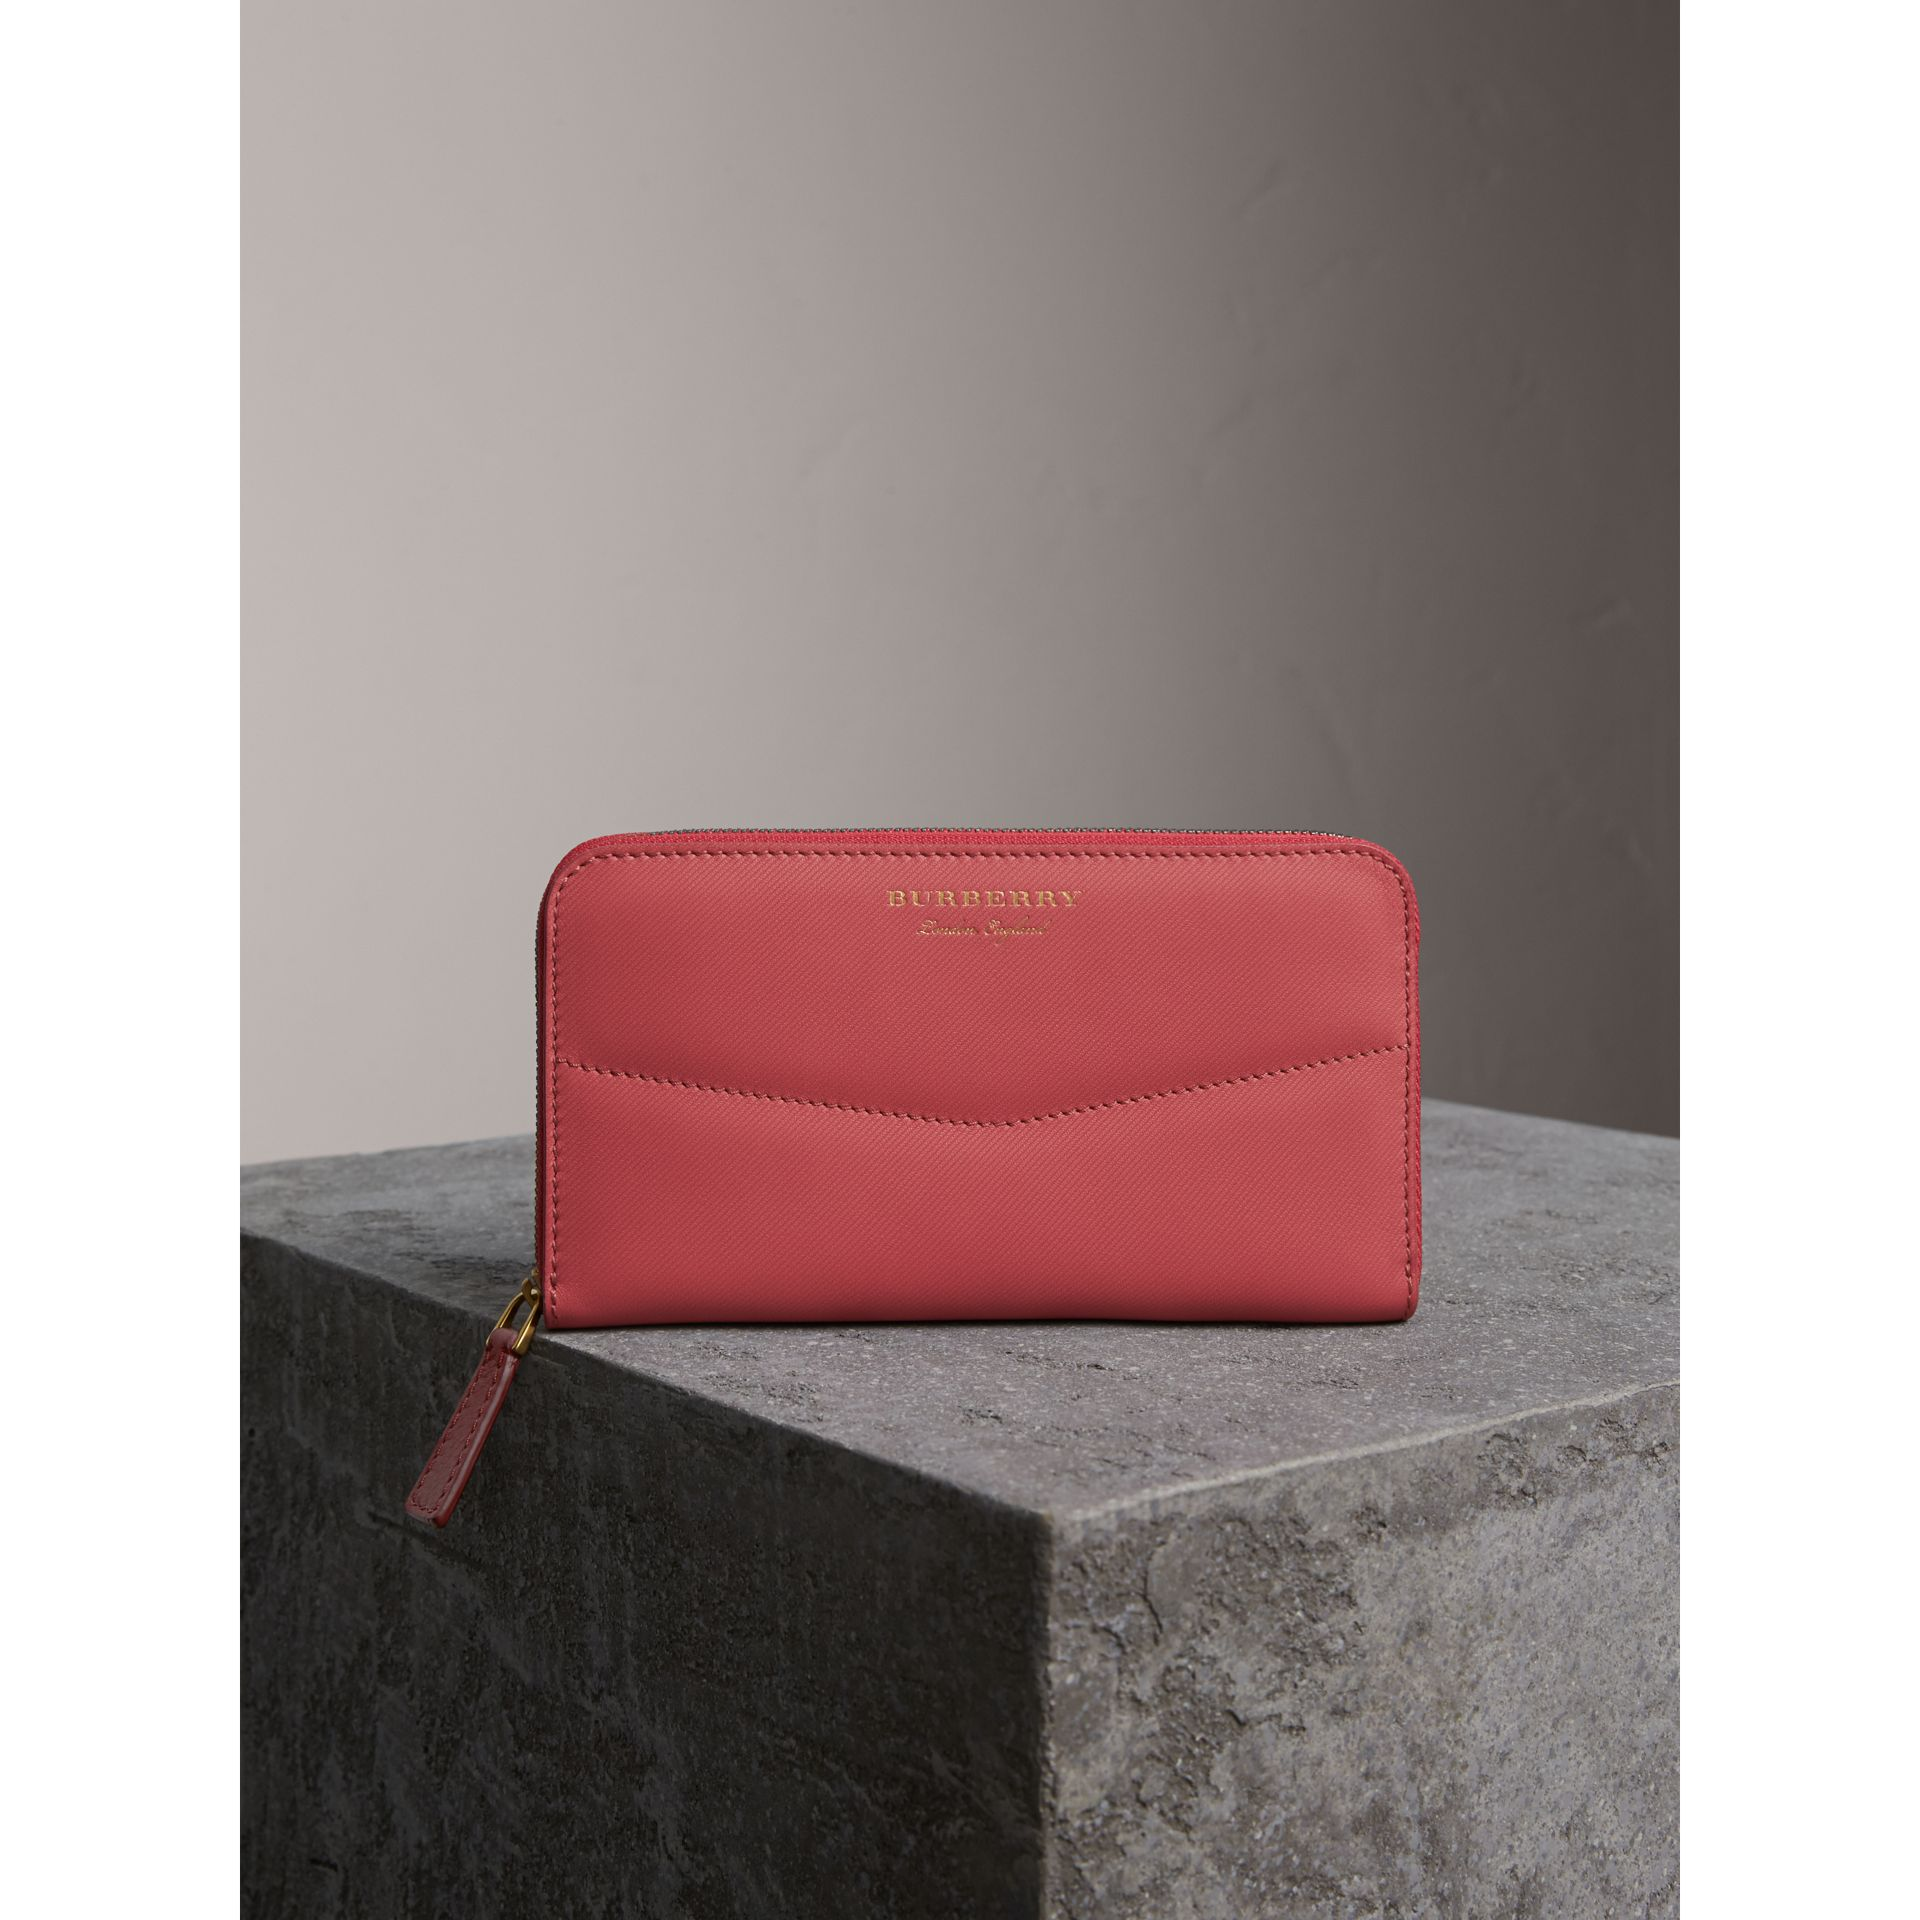 Two-tone Trench Leather Ziparound Wallet in Blossom Pink - Women | Burberry United Kingdom - gallery image 5